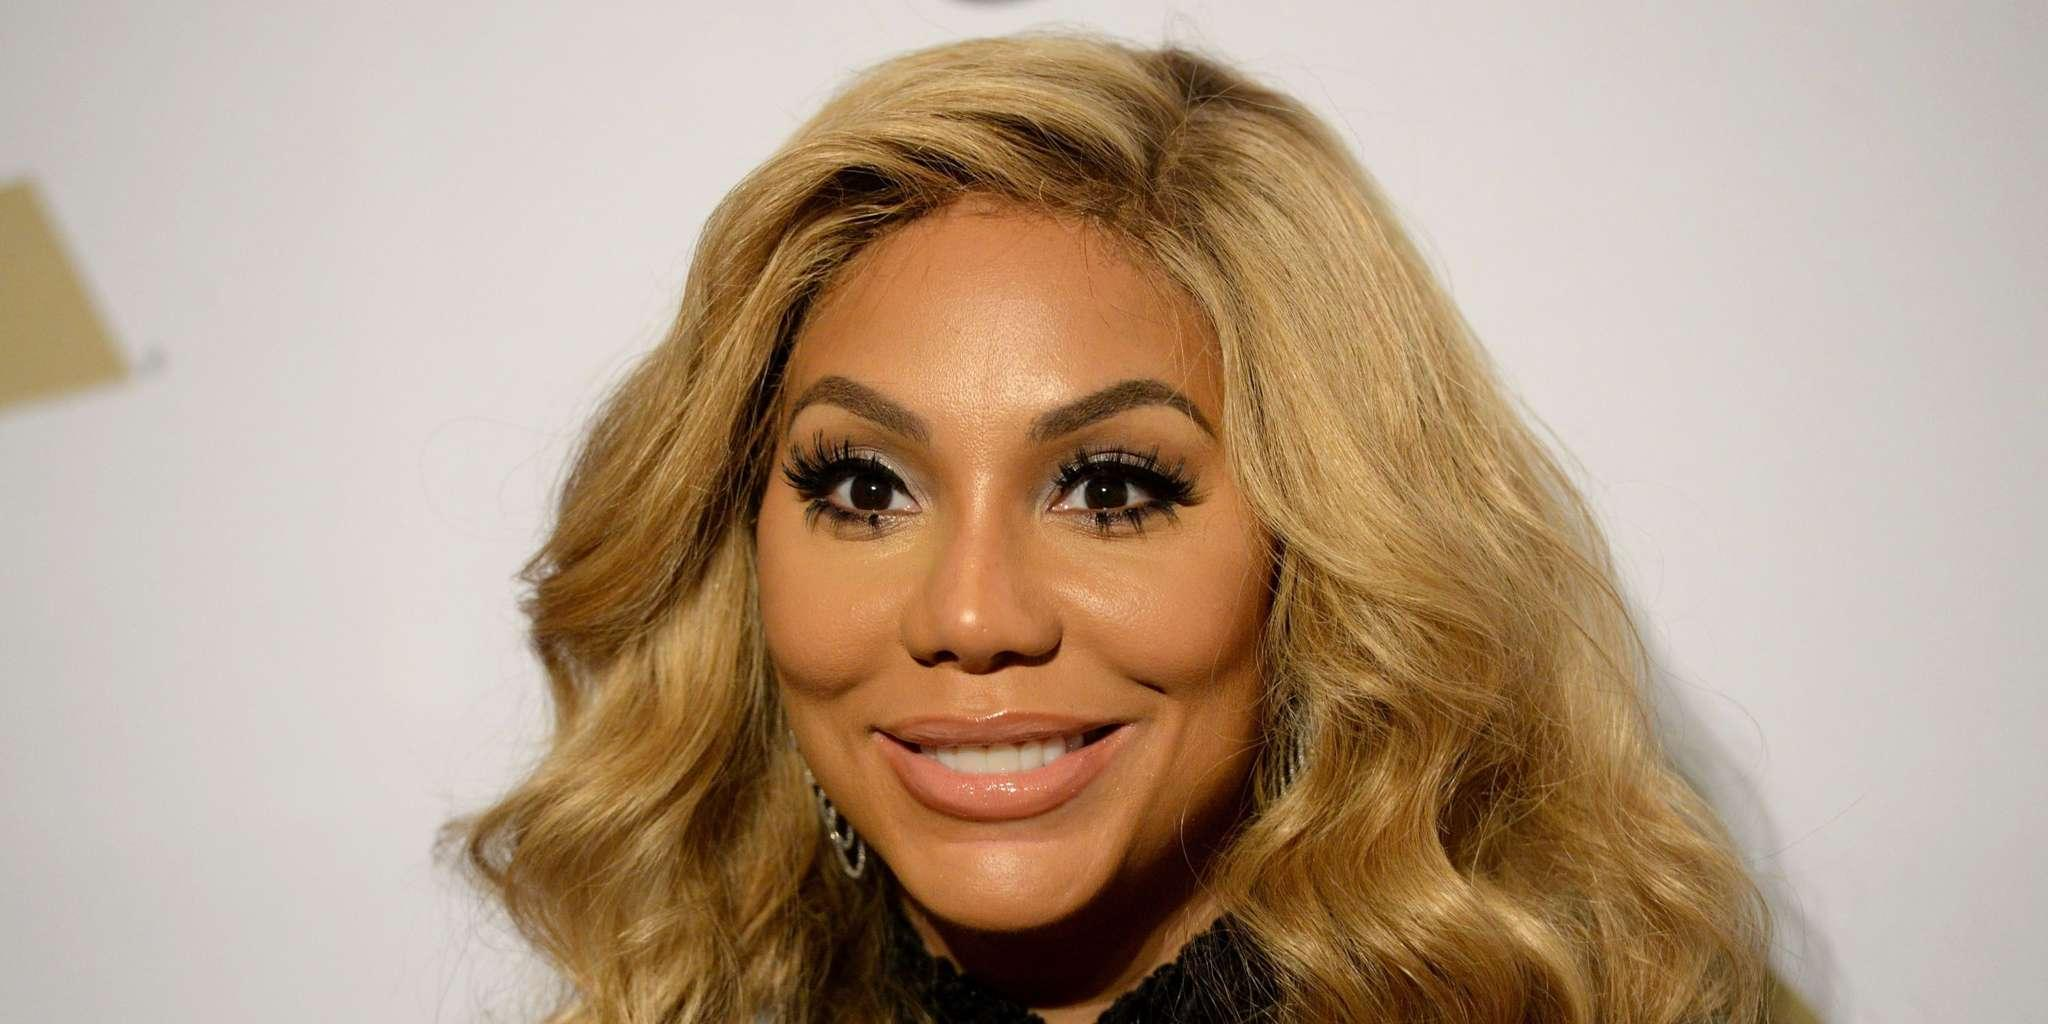 Tamar Braxton Tries To Make A Fashion Video But All Her Boo, David Adefeso, Wants Is To 'See Her On A Plate'